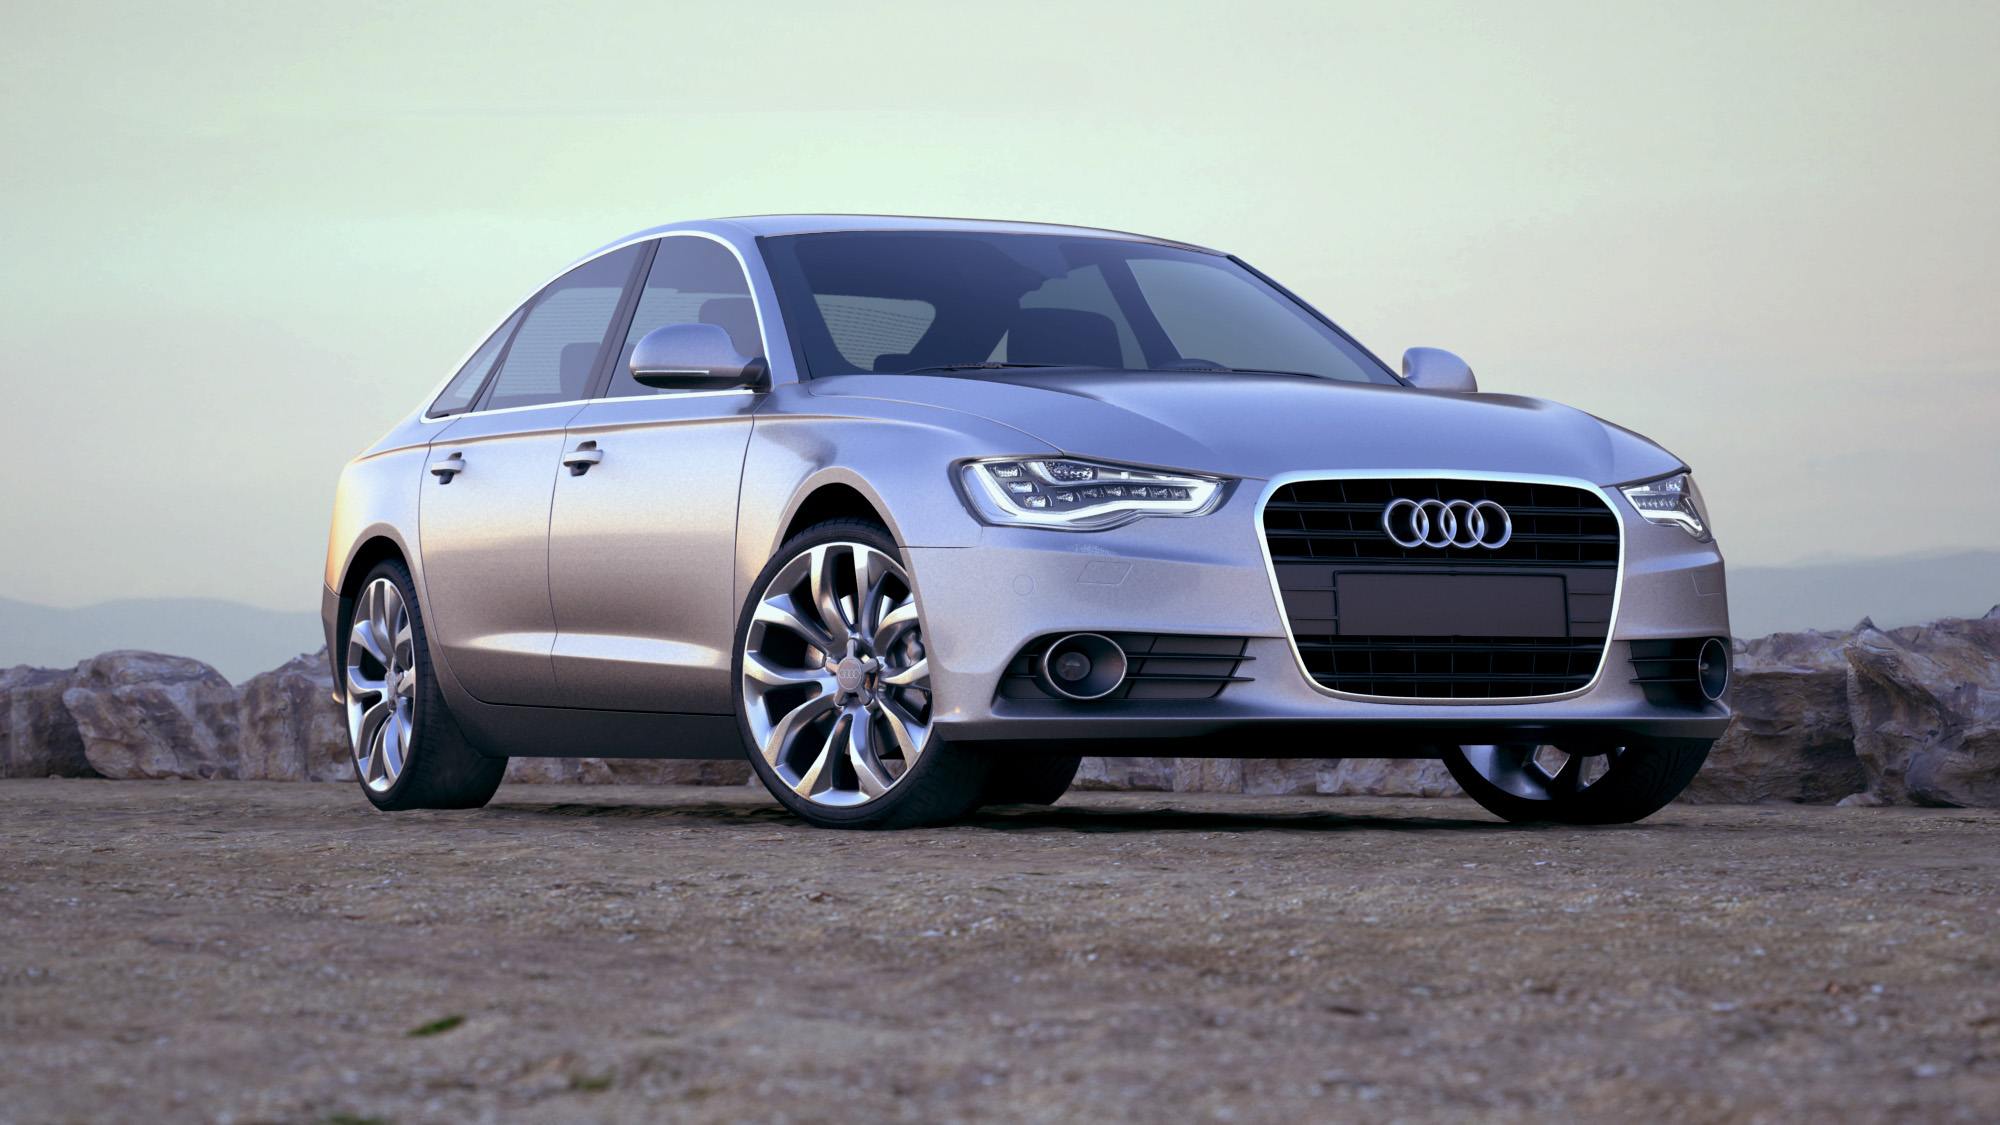 2013 Audi A6 (c7) - pictures, information and specs - Auto ...